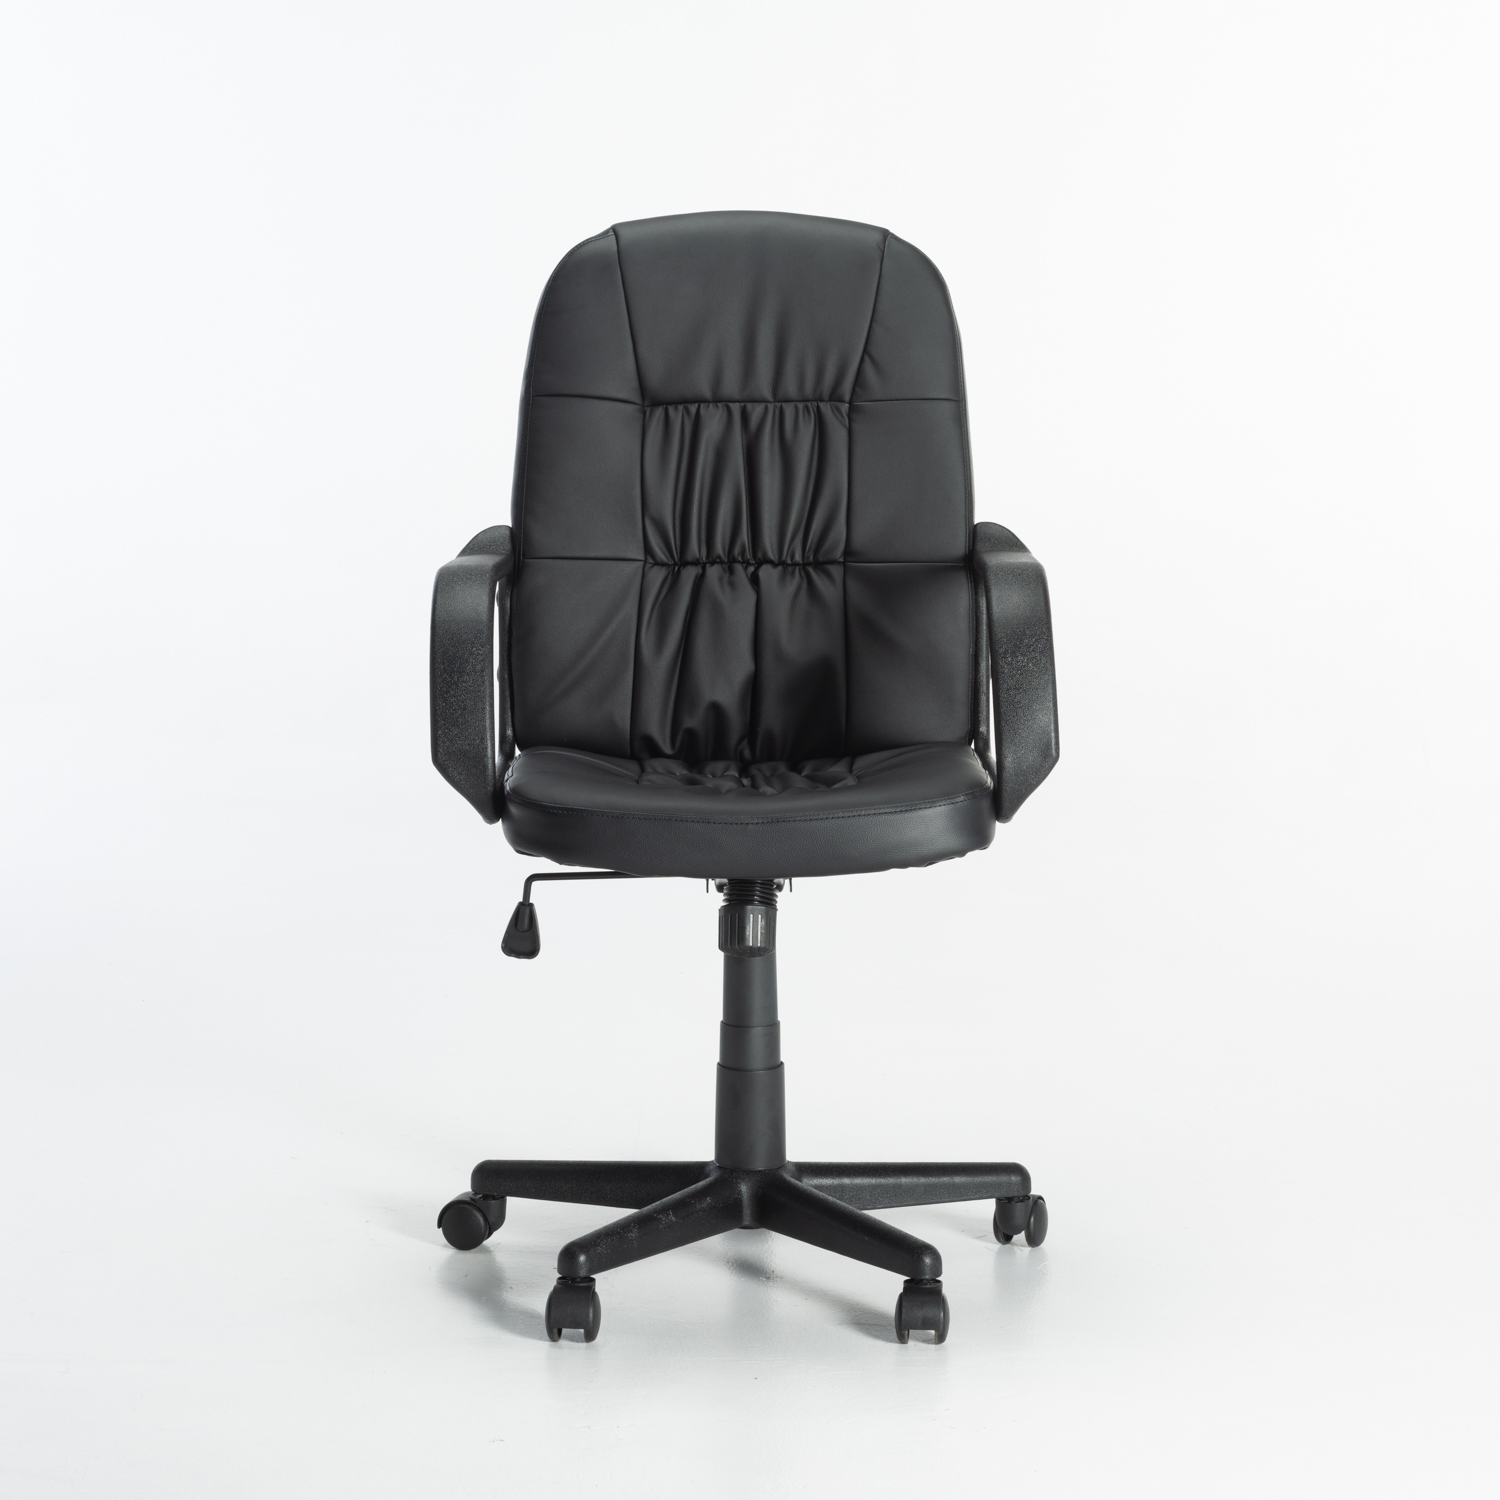 OF610 OFFICE CHAIR